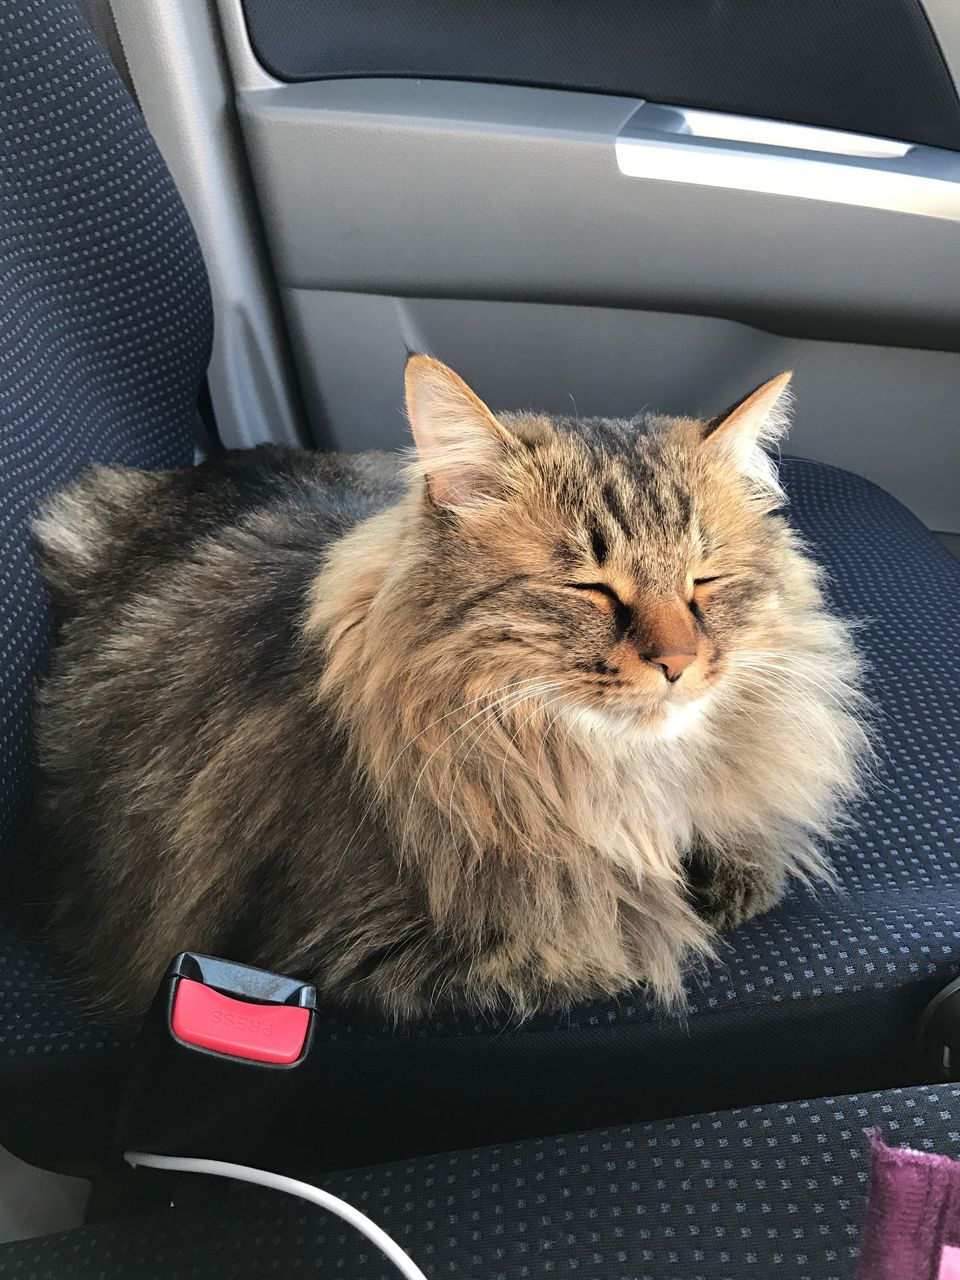 car, mode of transport, transportation, land vehicle, vehicle interior, domestic cat, pets, car interior, domestic animals, one animal, mammal, feline, vehicle seat, animal themes, no people, sitting, day